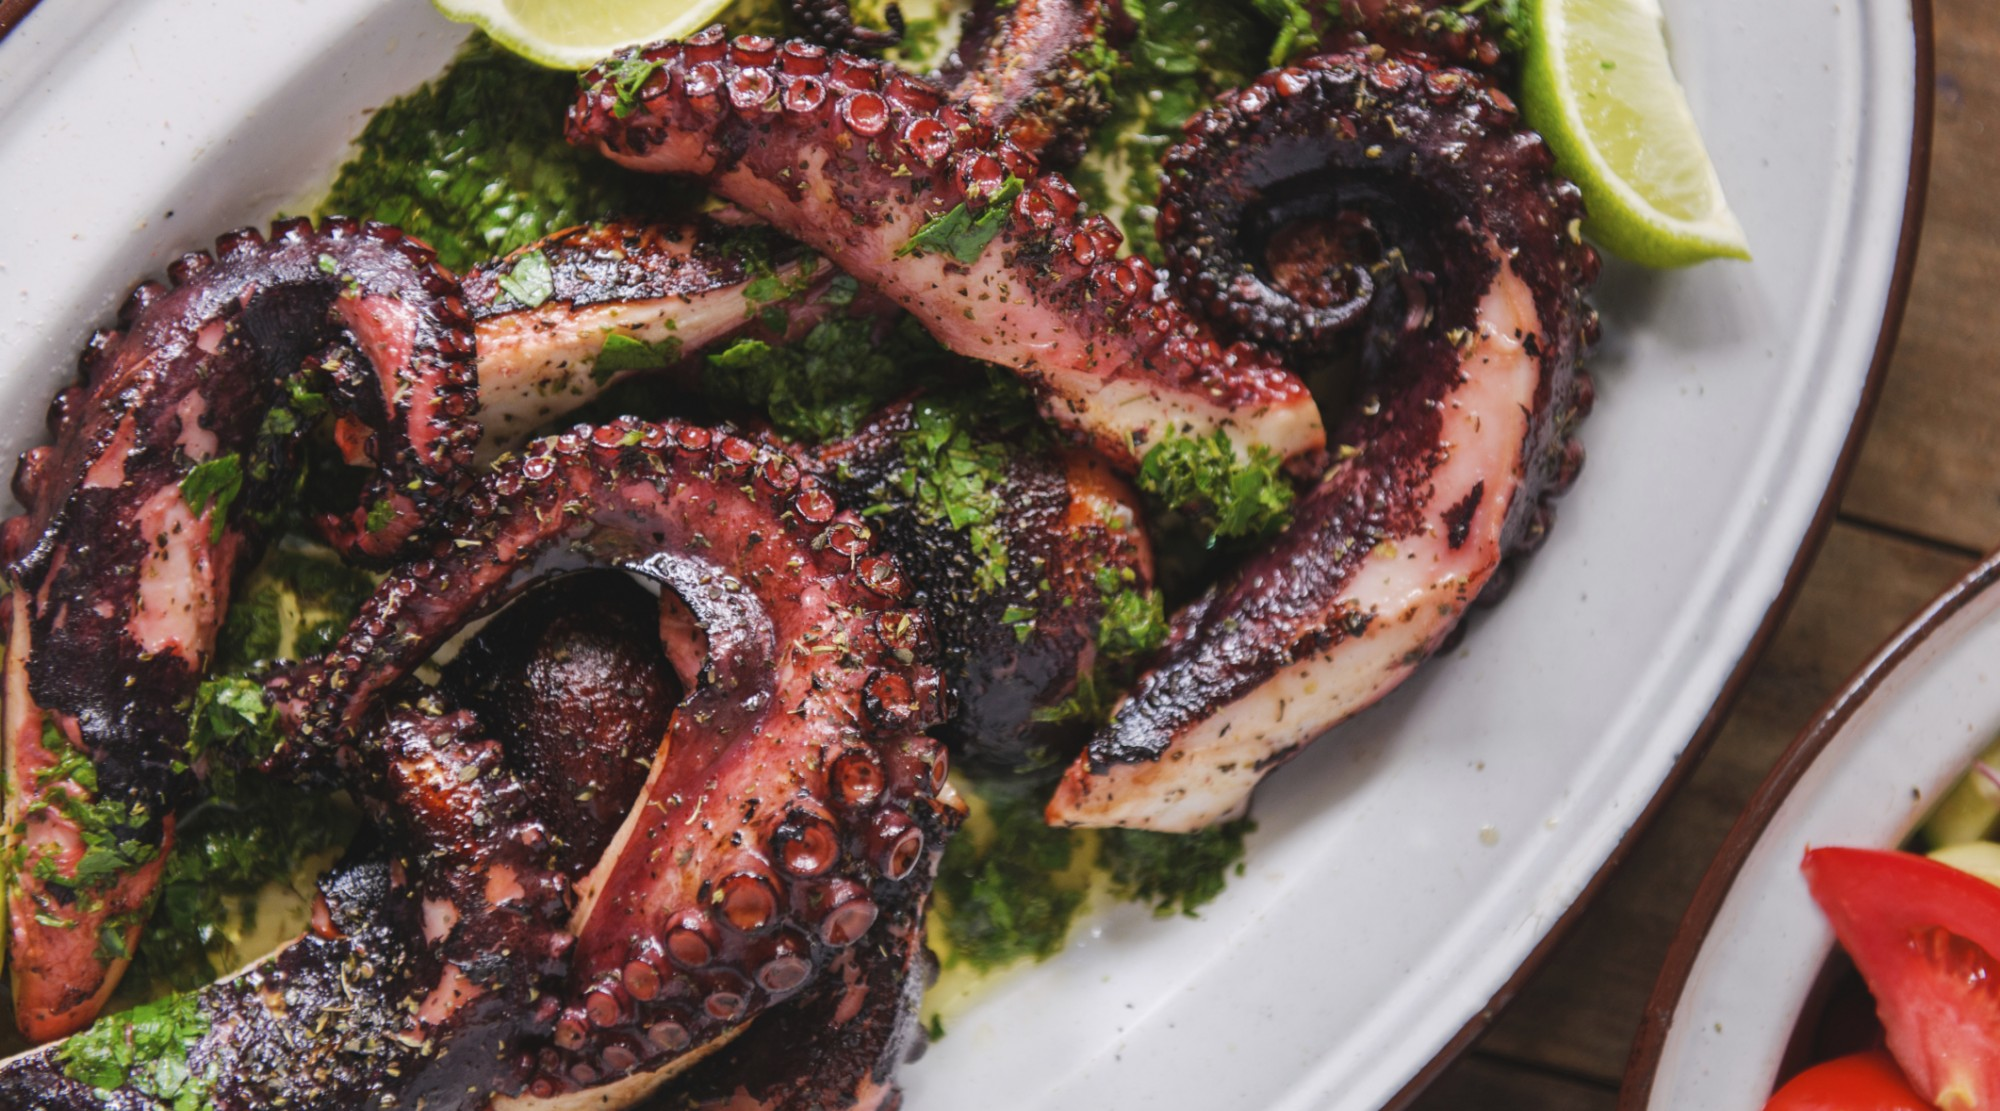 Grilled octopus tentacles with lime and cilantro